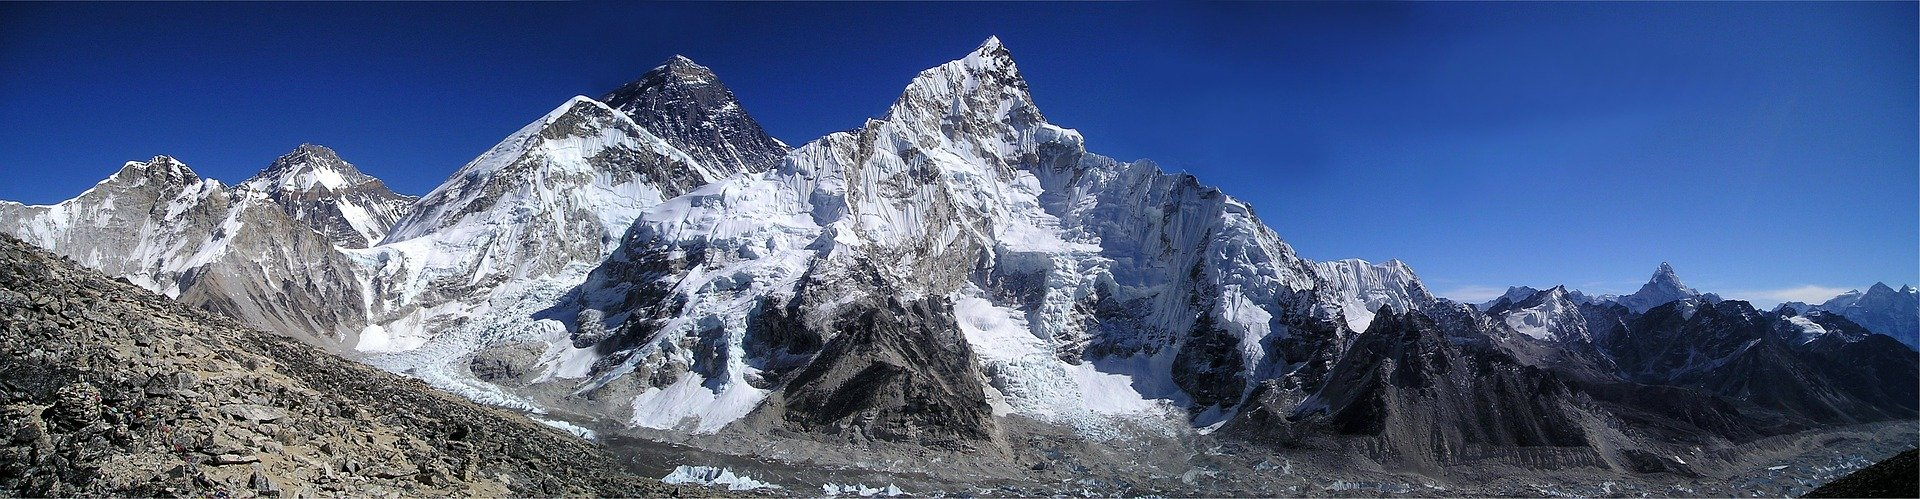 Pikey Peak to Everest Base Camp Trek